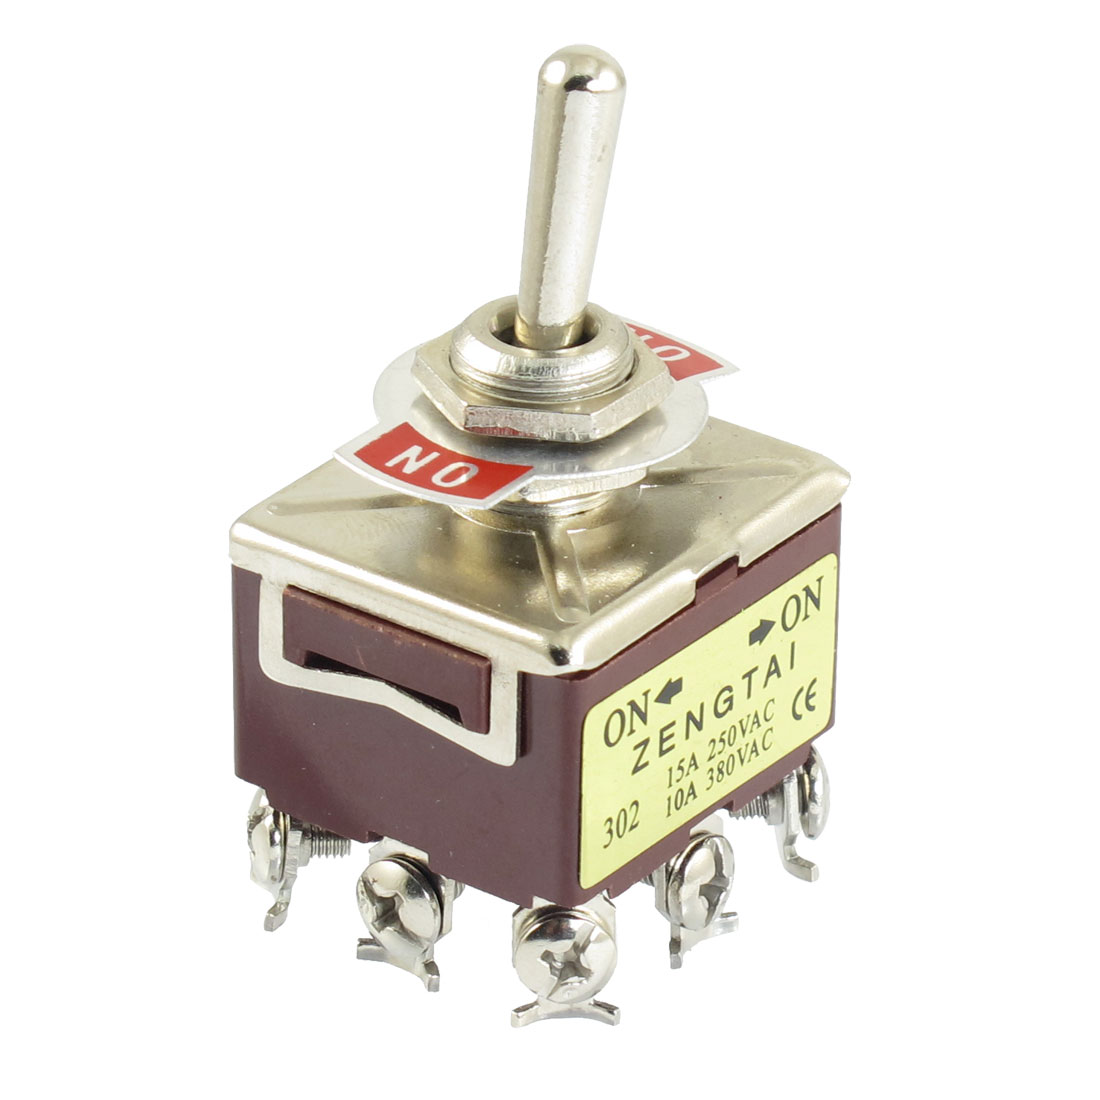 Panel-Mounted-ON-ON-2-Way-3PDT-Latching-Toggle-Switch-250VAC-15A-380VAC-10A